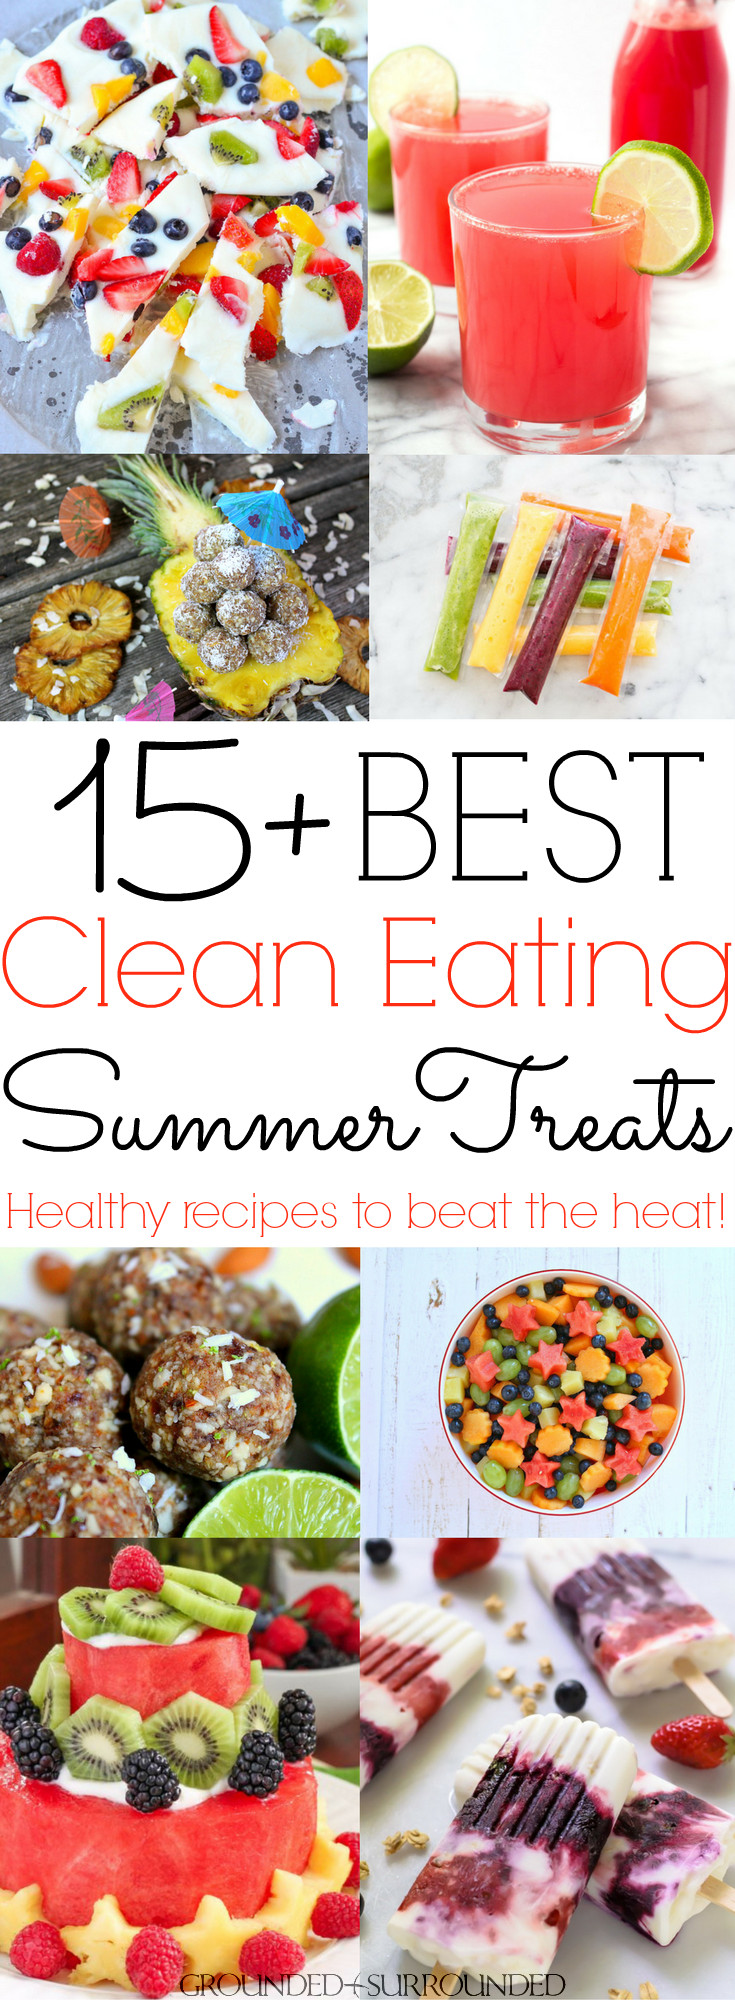 Summer Snacks Recipes  15 Best Clean Eating Summer Treats